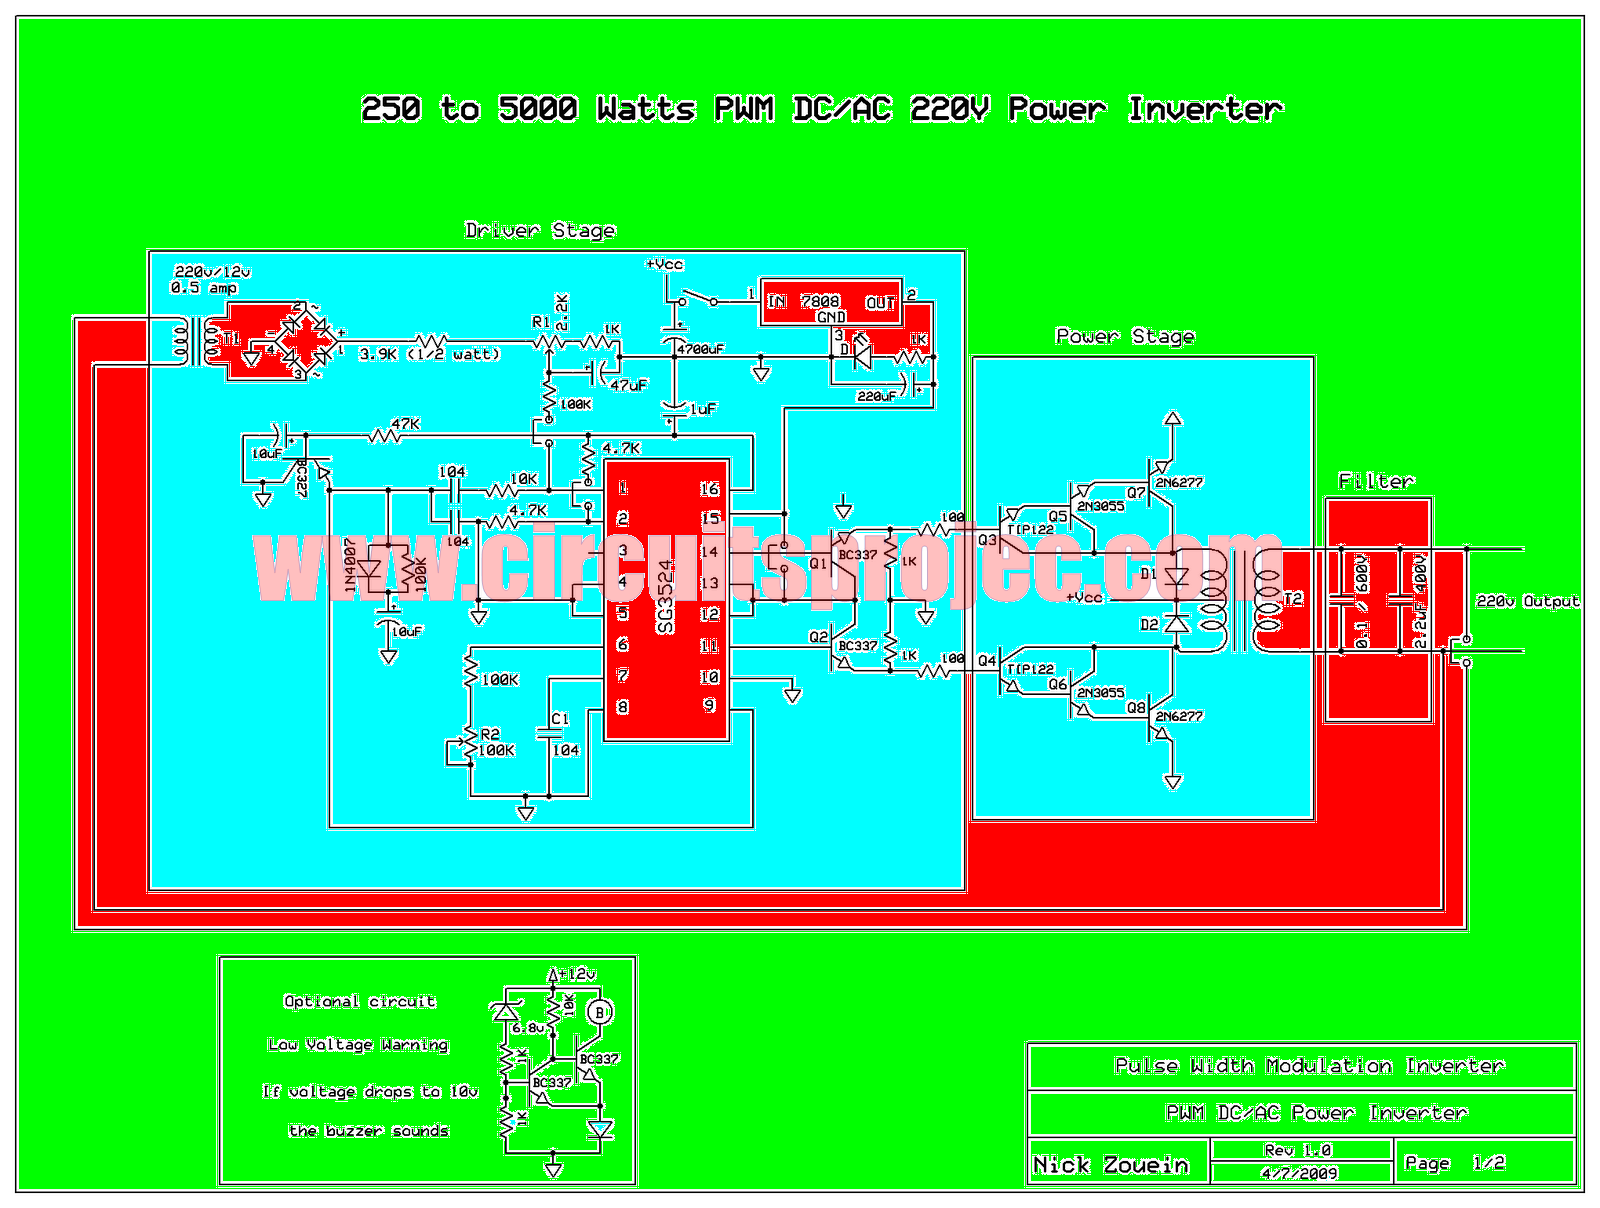 inverter 5000 watt pwm circuit diagram [ 1600 x 1208 Pixel ]